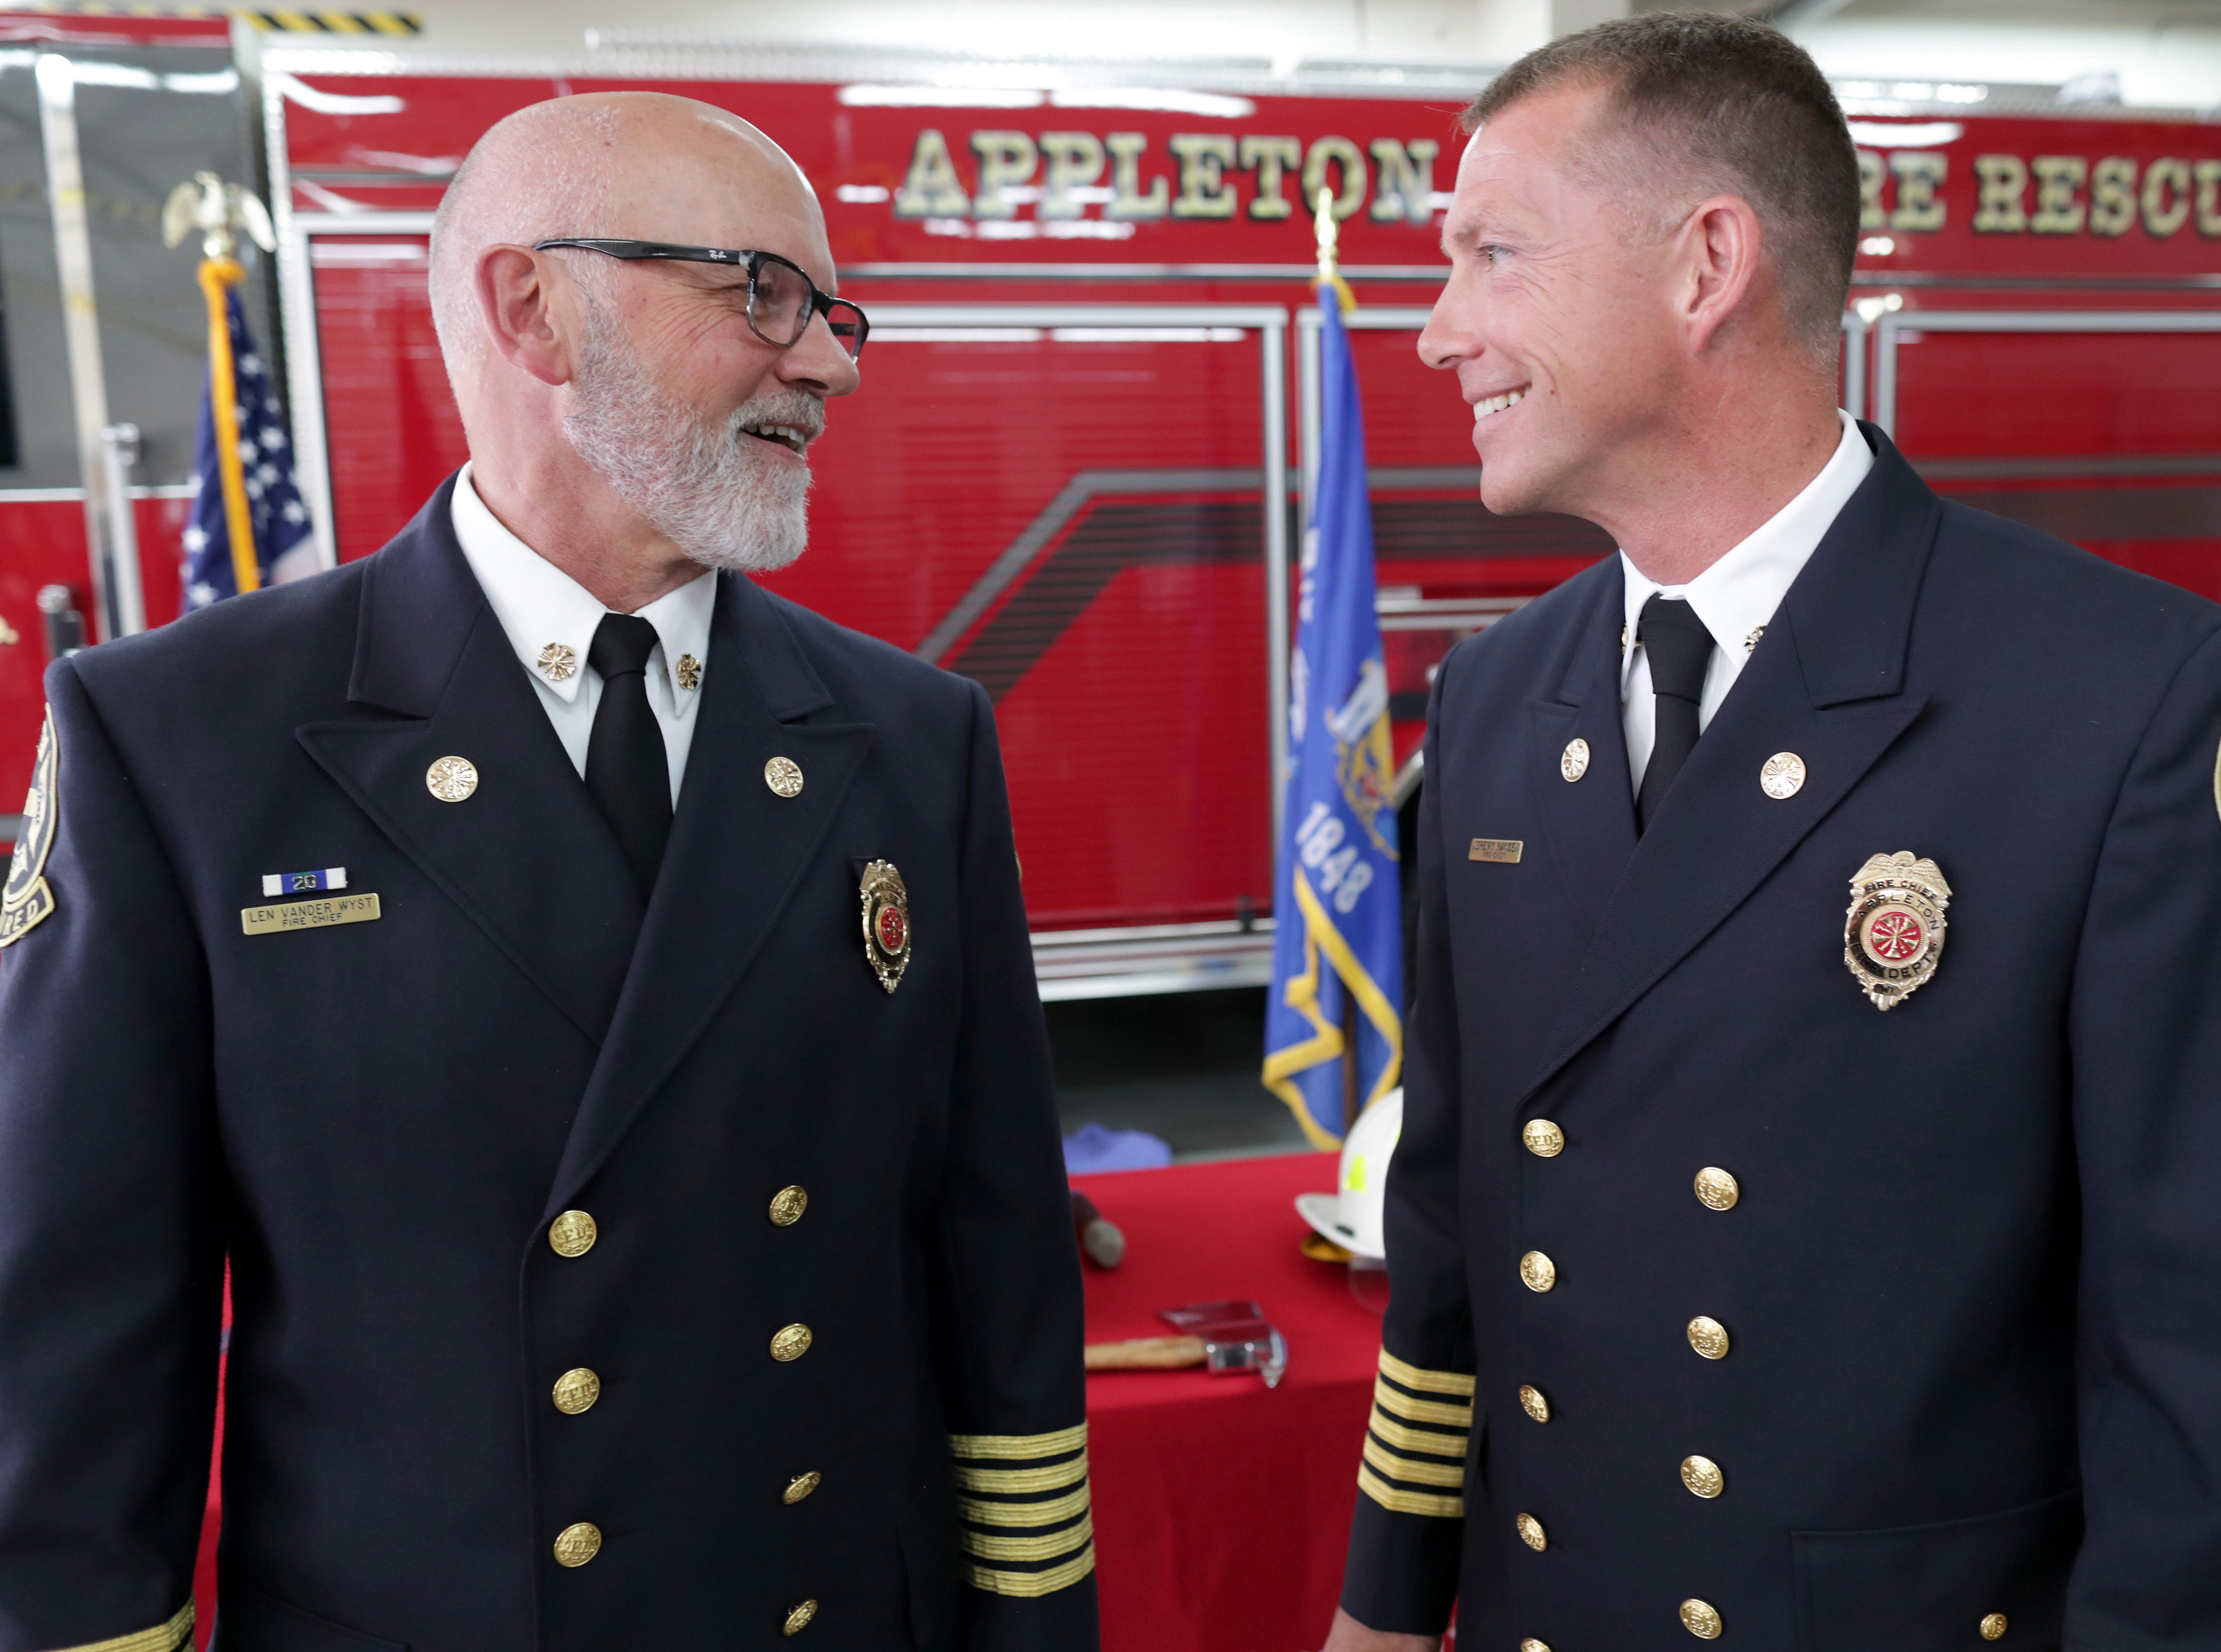 Retired Appleton Fire Chief Len Vander Wyst, left, talks to  new Fire Chief Jeremy Hansen in  follwing a swearing in ceremony on Monday, July 16, 2018 at Fire Station 1 in Appleton, Wis. 